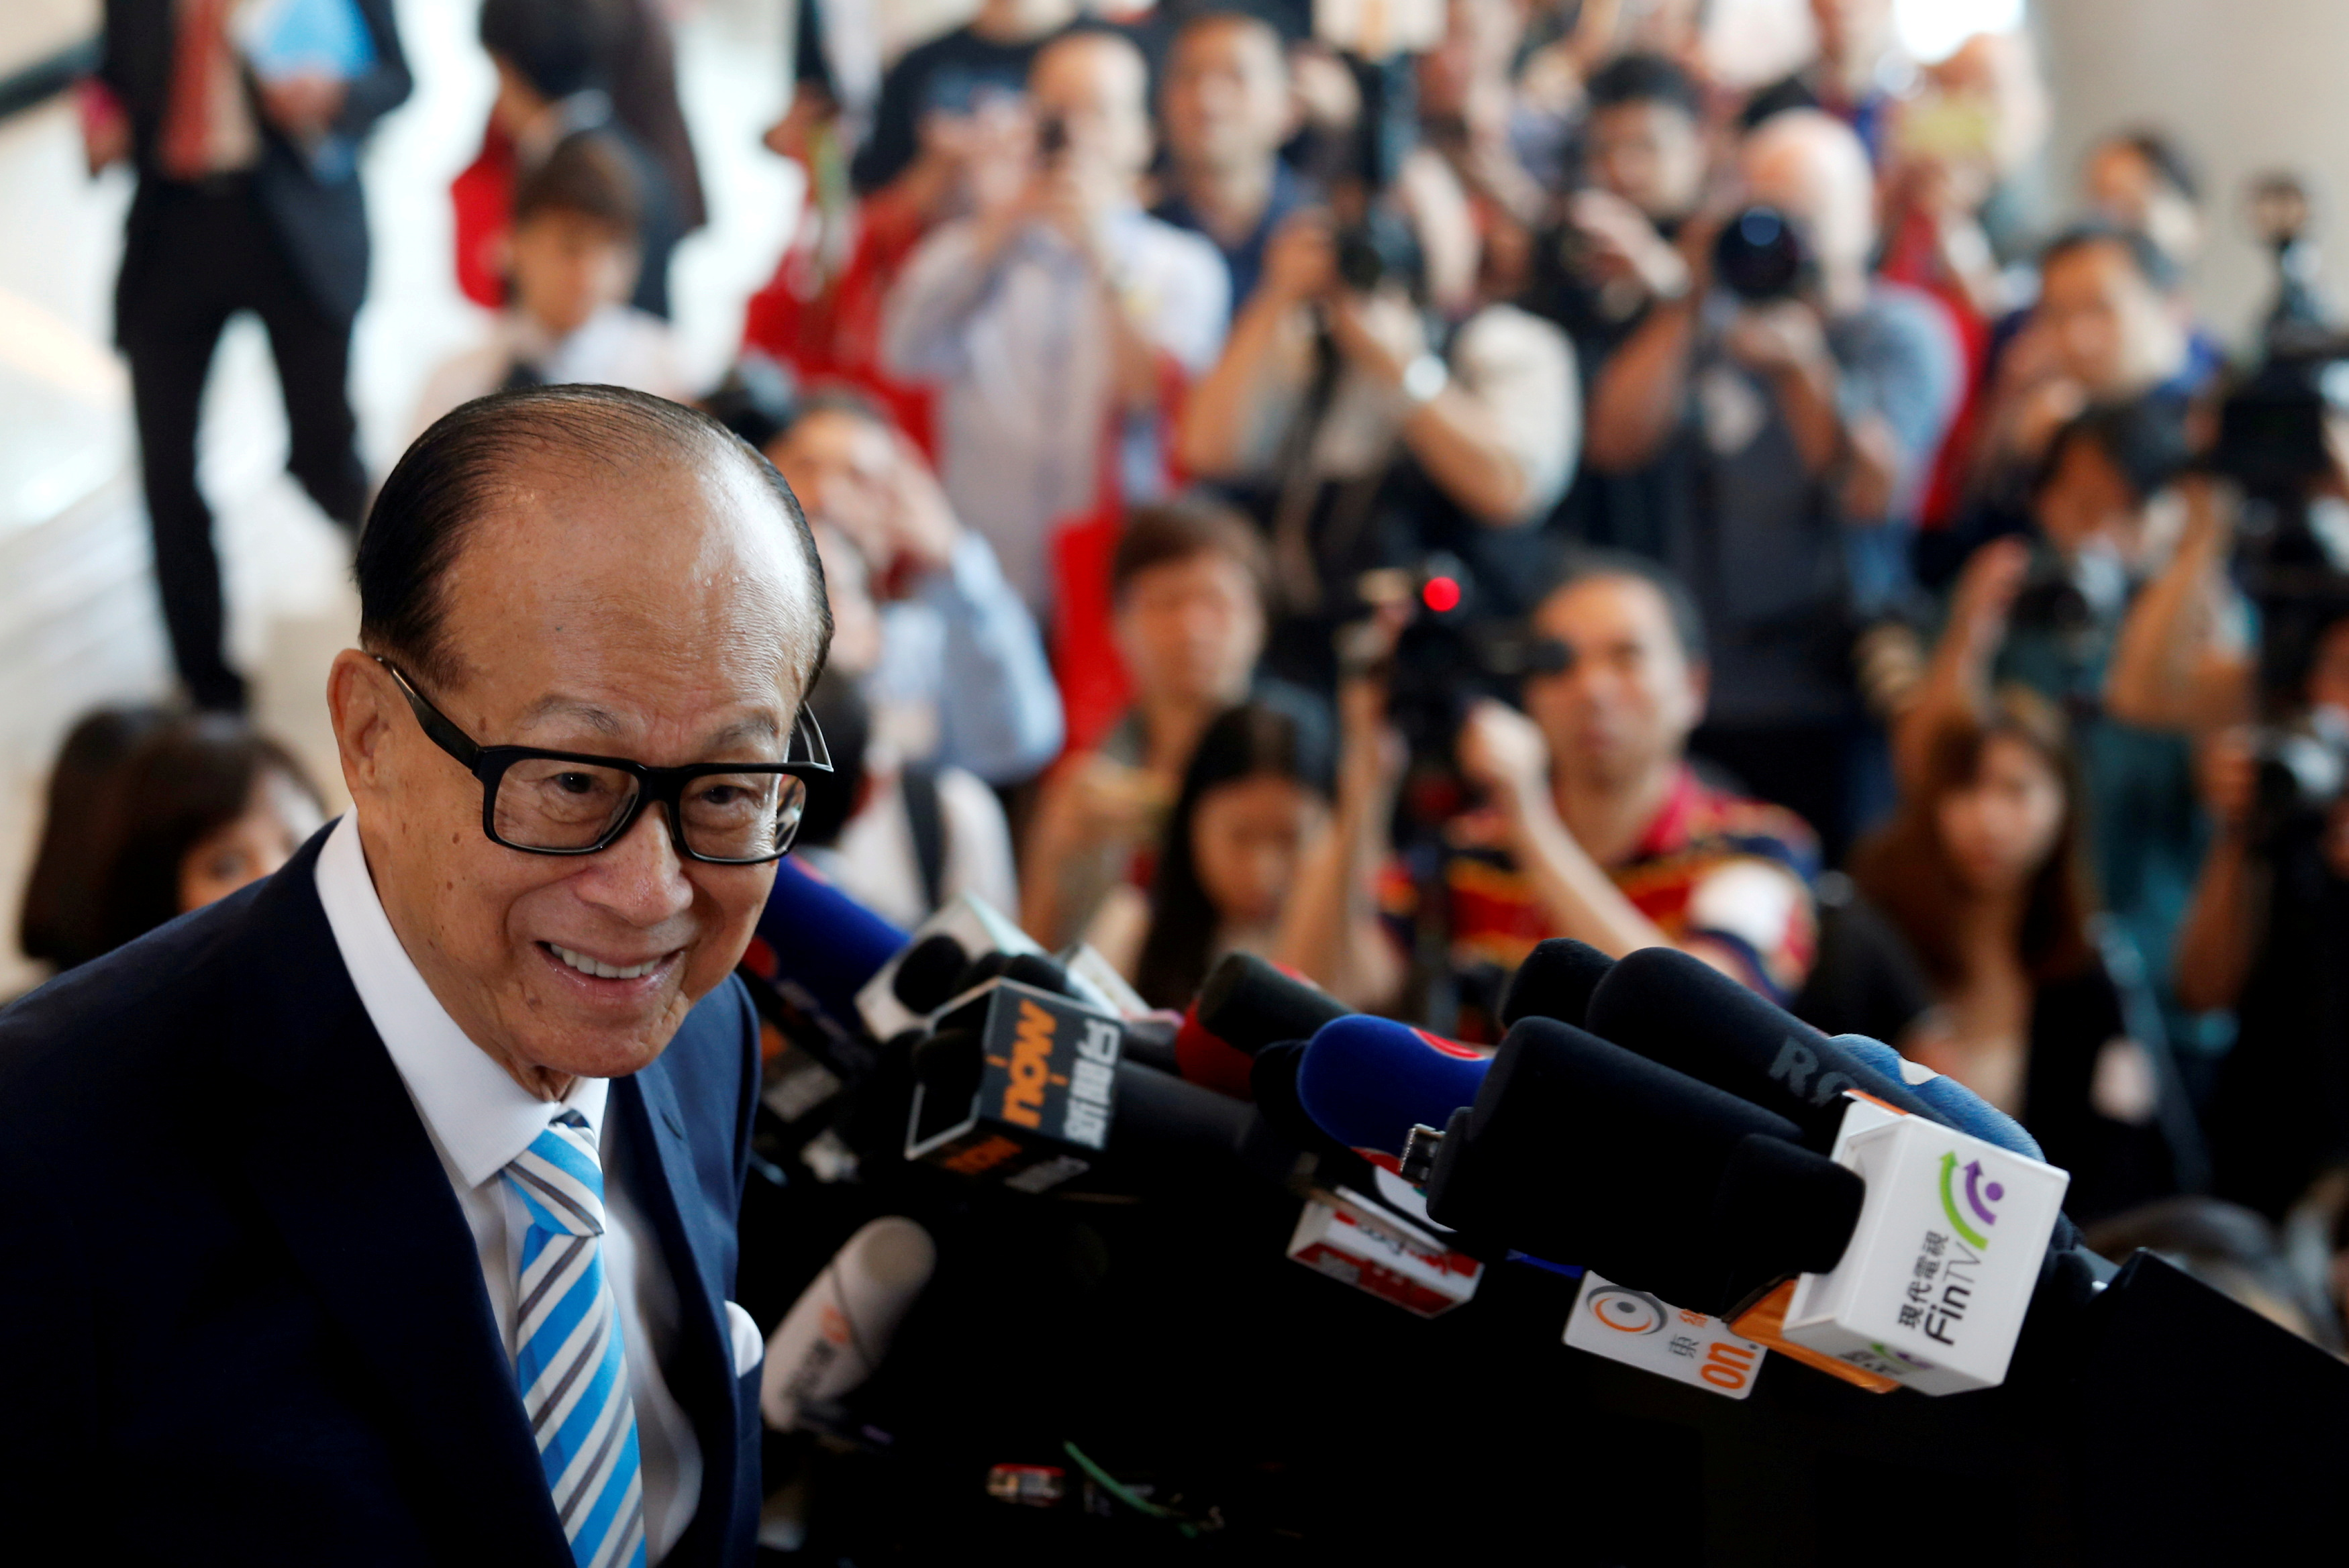 Hong Kong tycoon Li Ka-shing, chairman of CK Hutchison Holdings, meets journalists as he formally retires after the company's Annual General Meeting in Hong Kong, China May 10, 2018.  REUTERS/Bobby Yip/File Photo